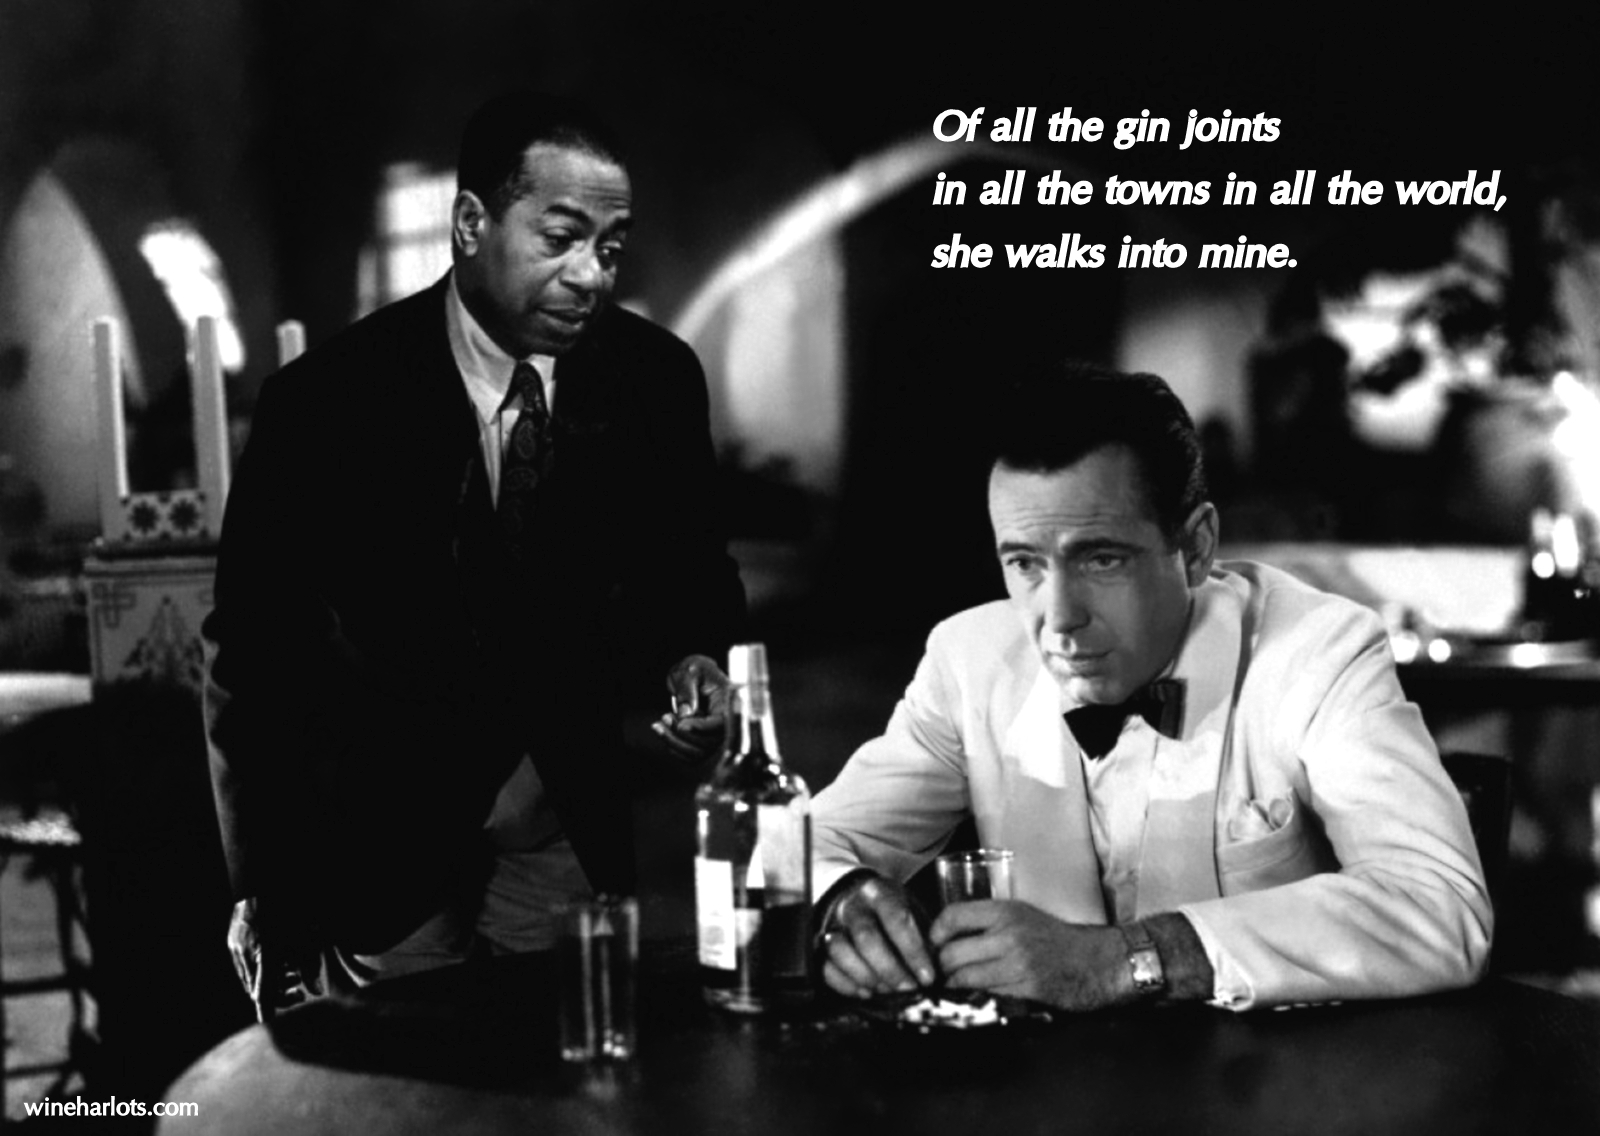 Humphrey-Bogart-Casablanca-Gin-Joints